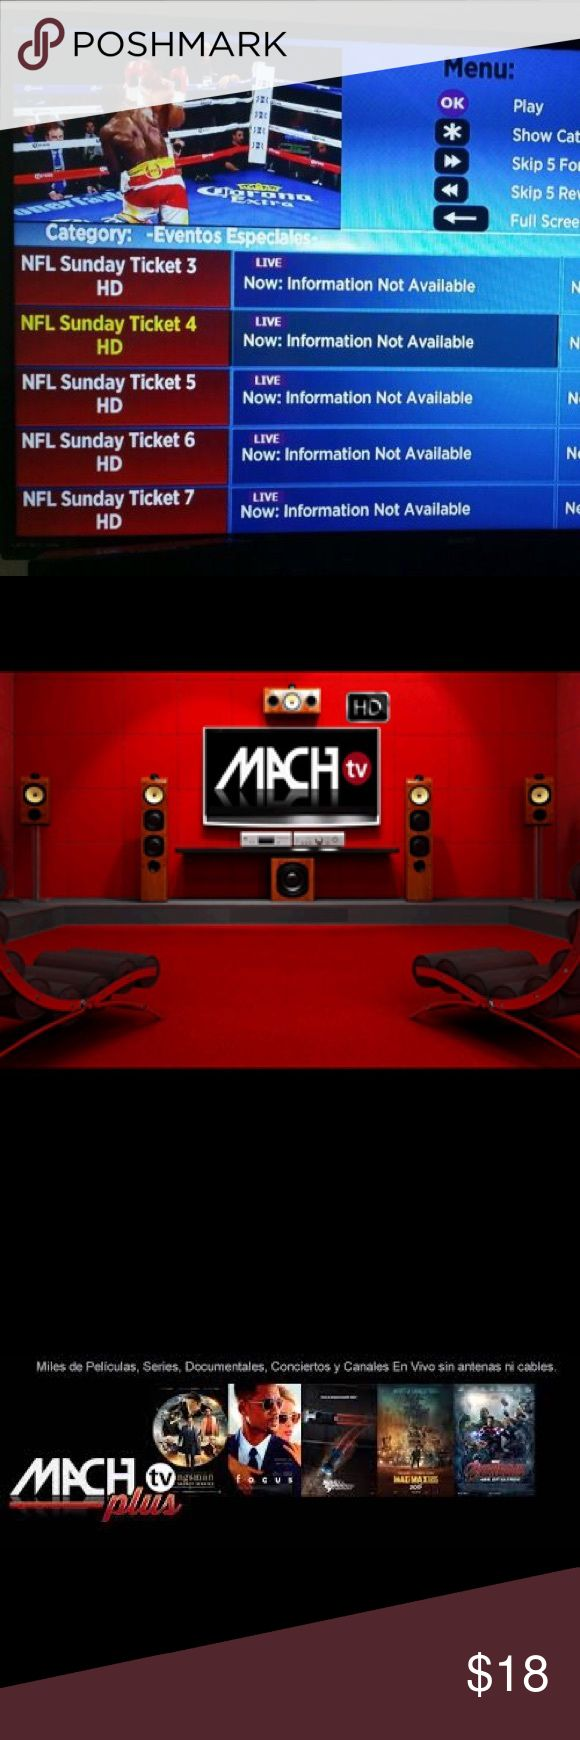 Machtv Plus Live TV & Sports Channels Access more than 100 Live TV Channels with your Roku and MachTV. roku Other